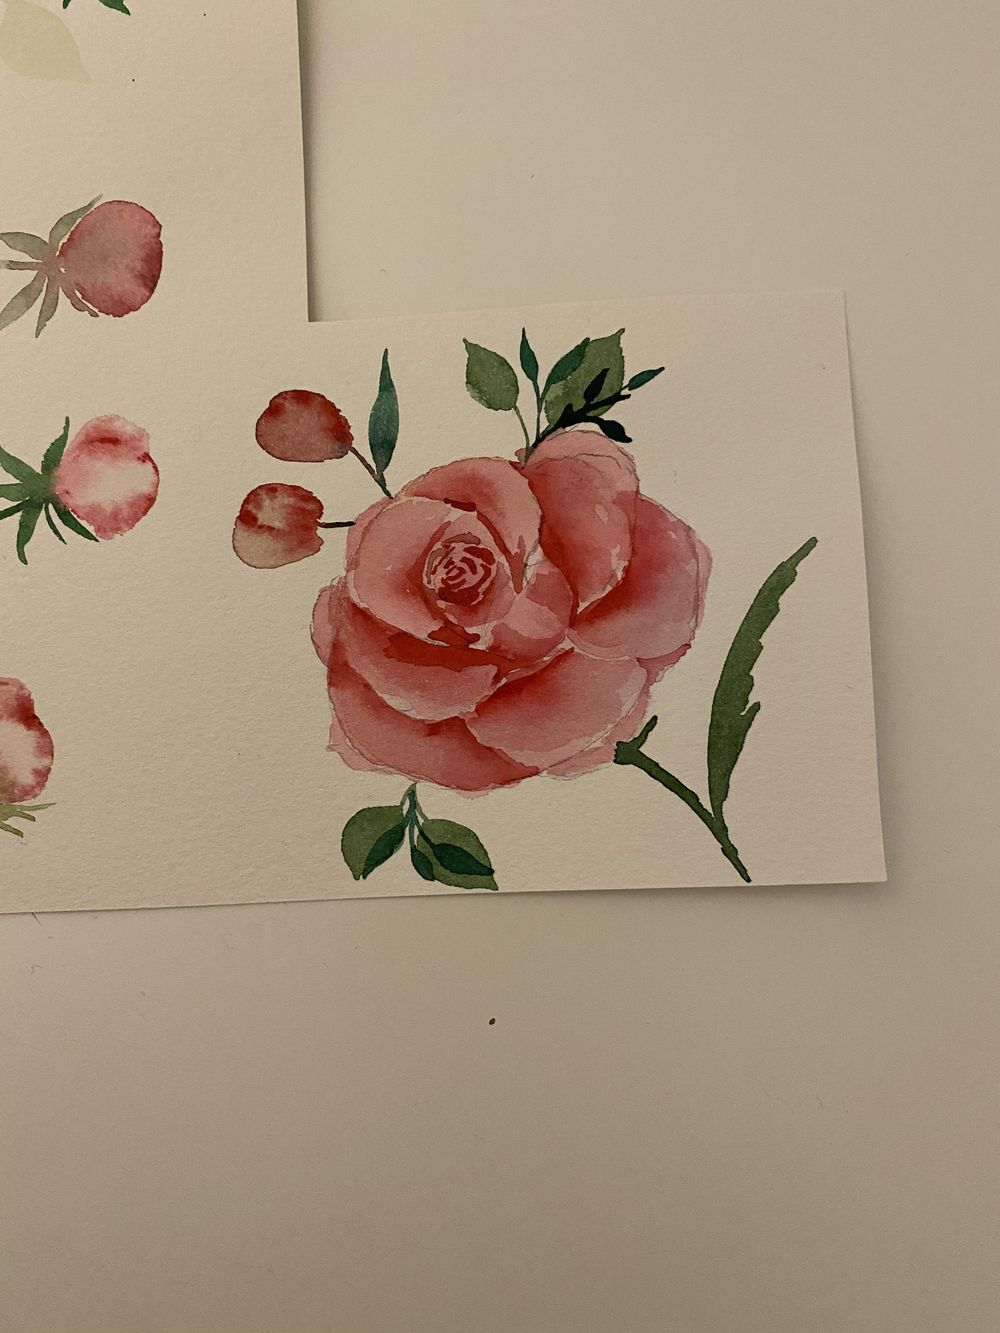 Florals - image 5 - student project